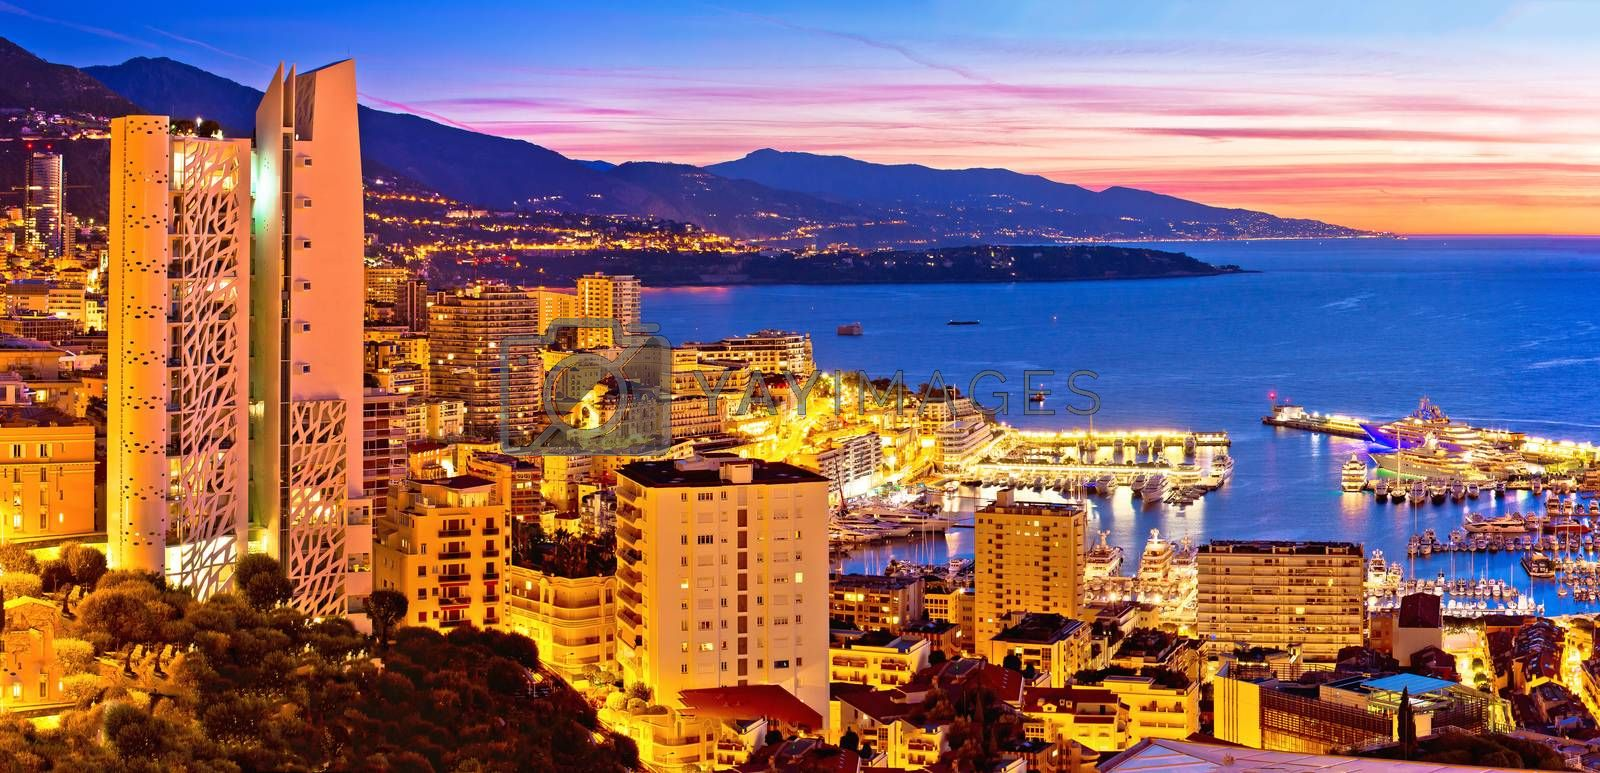 Monte Carlo cityscape colorful evening panoramic view from above, Principality of Monaco